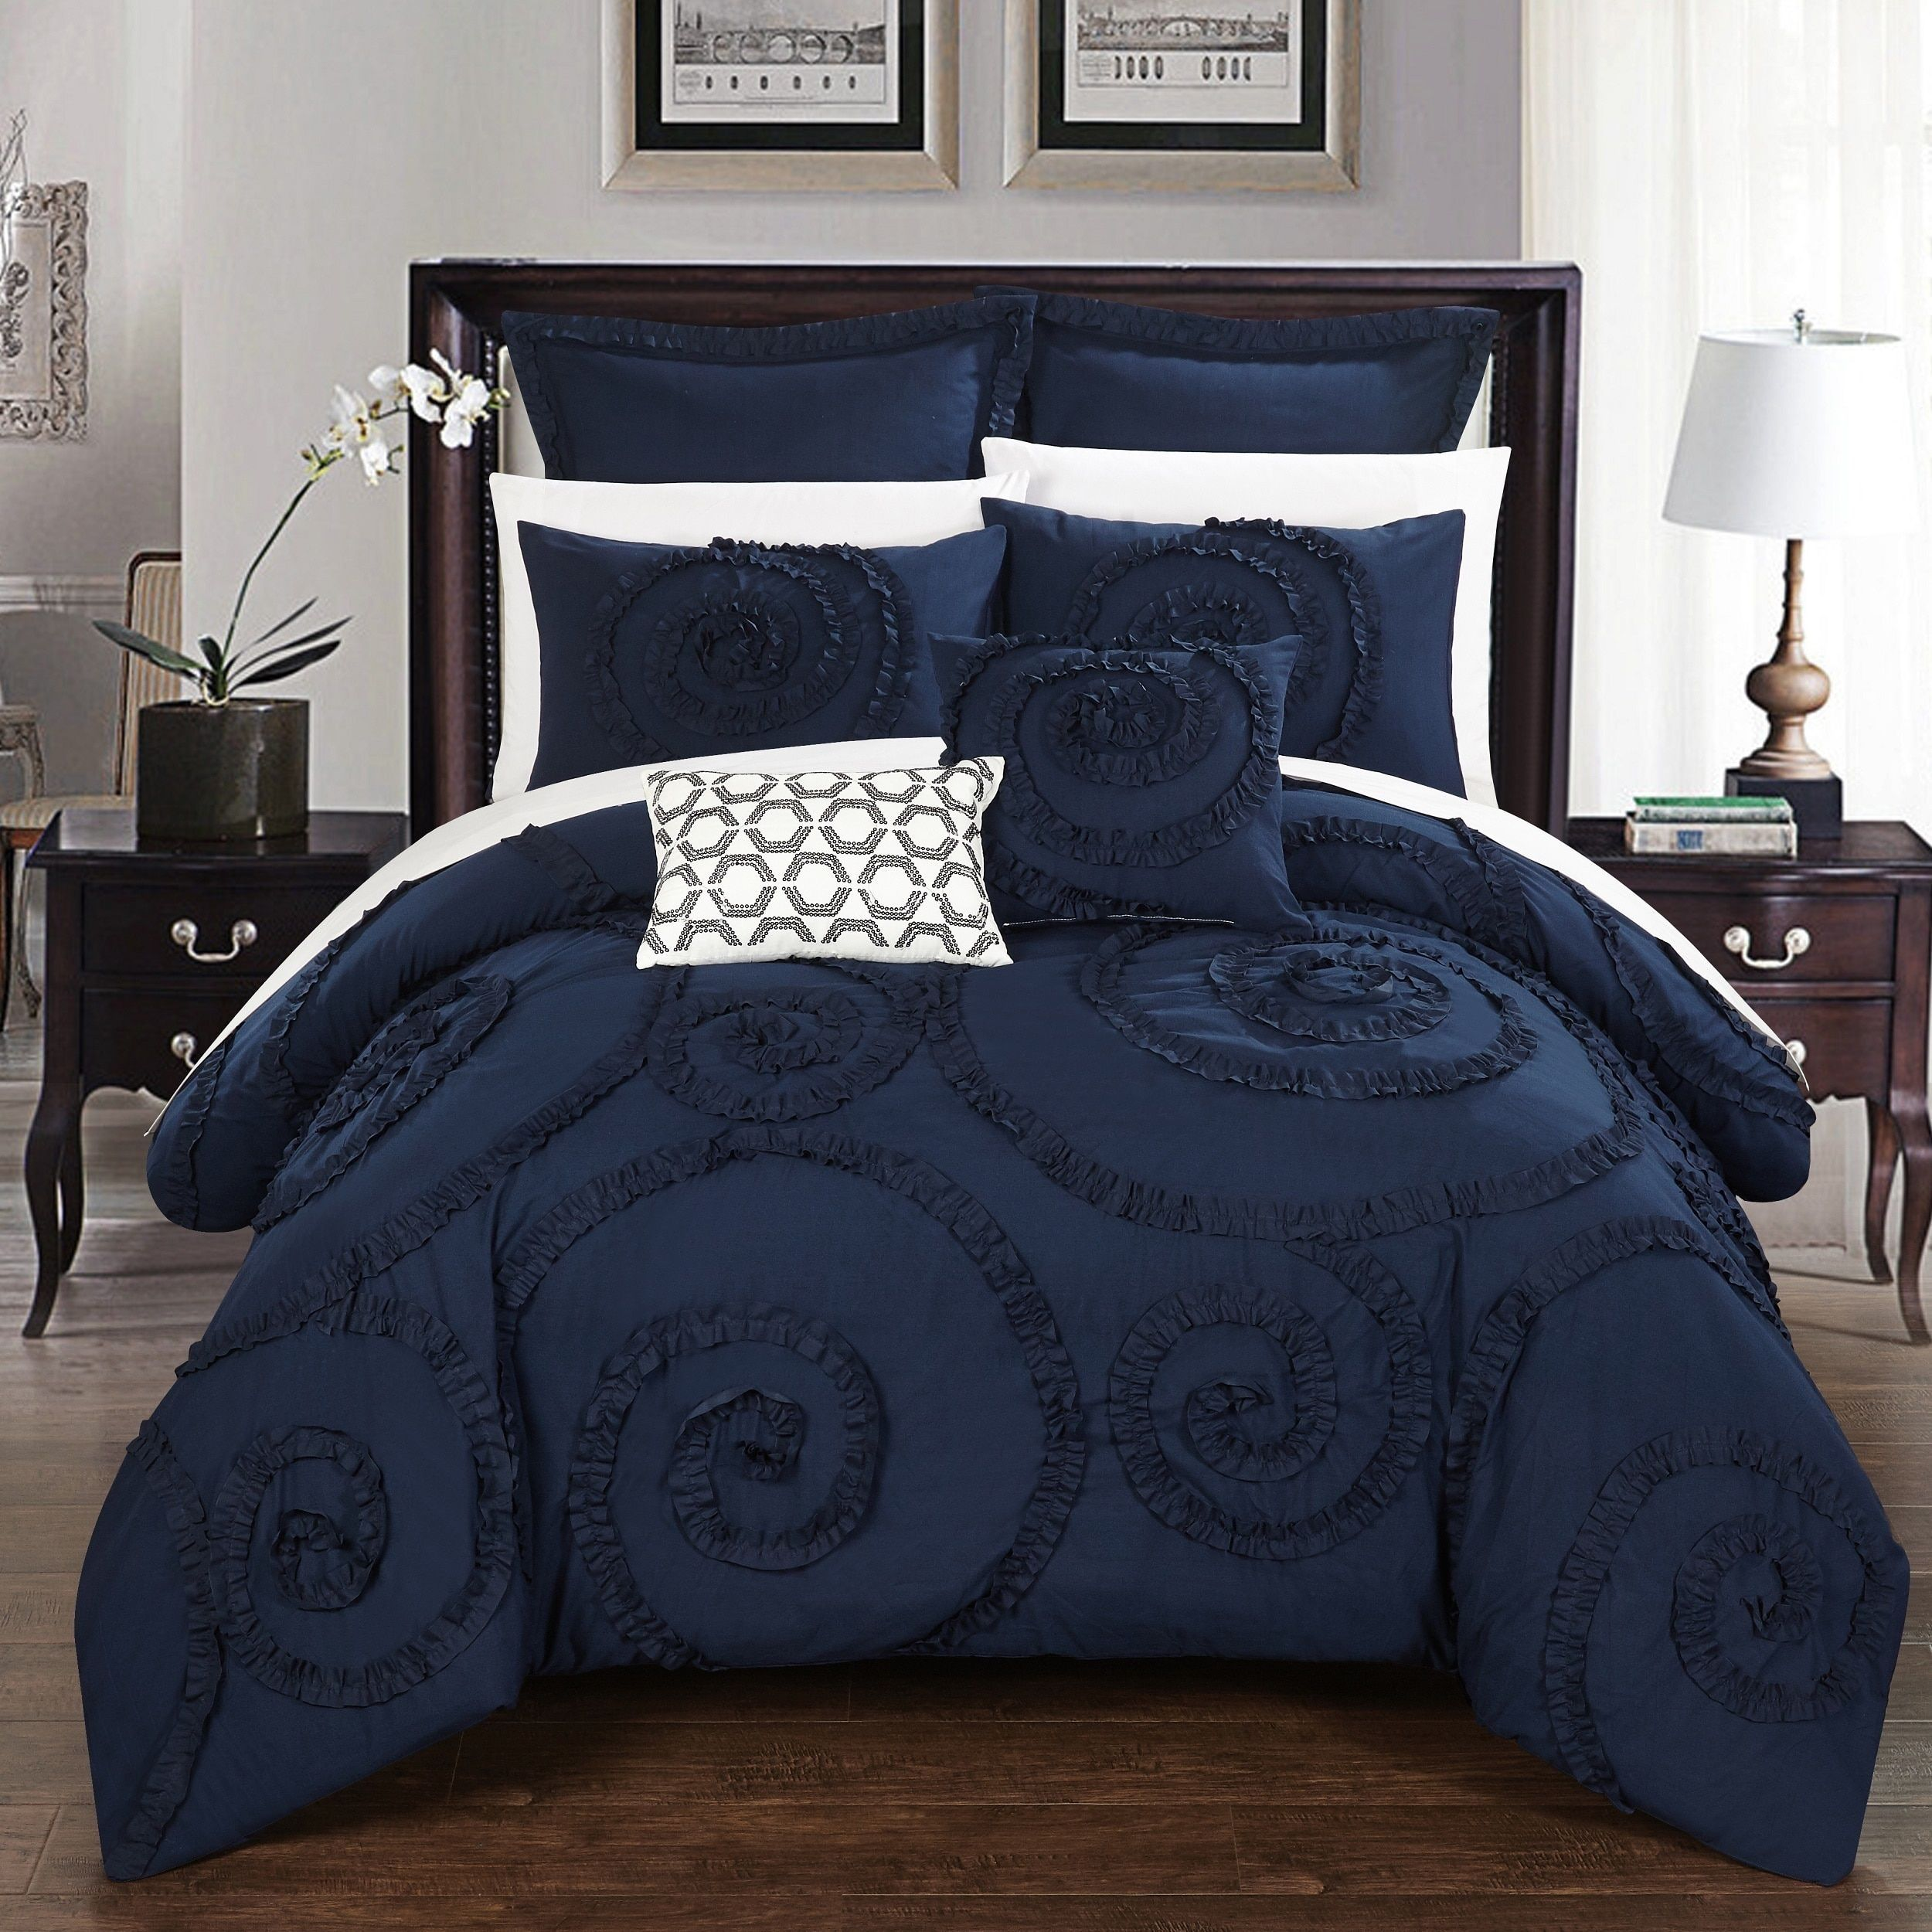 Gracewood Hollow Harper 7 Piece Navy Comforter Set King Navy